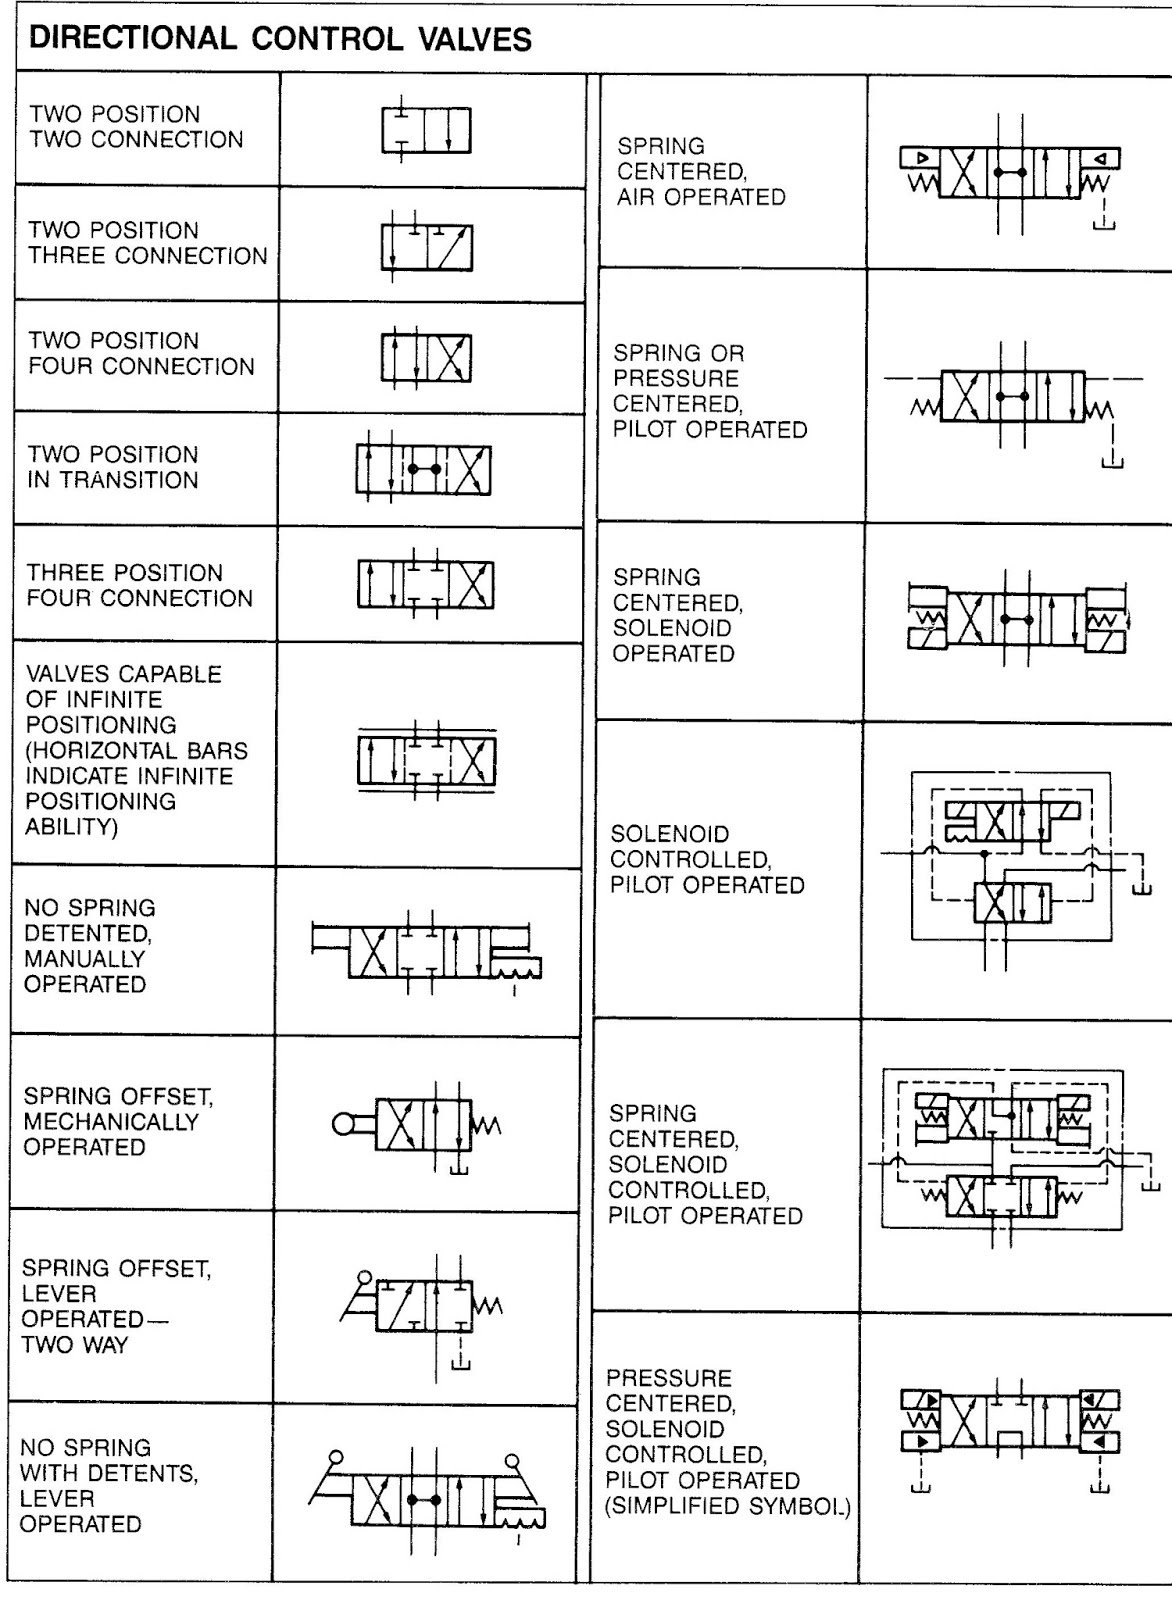 Mariners repository hydraulics part 1 direction control valves symbols buycottarizona Images